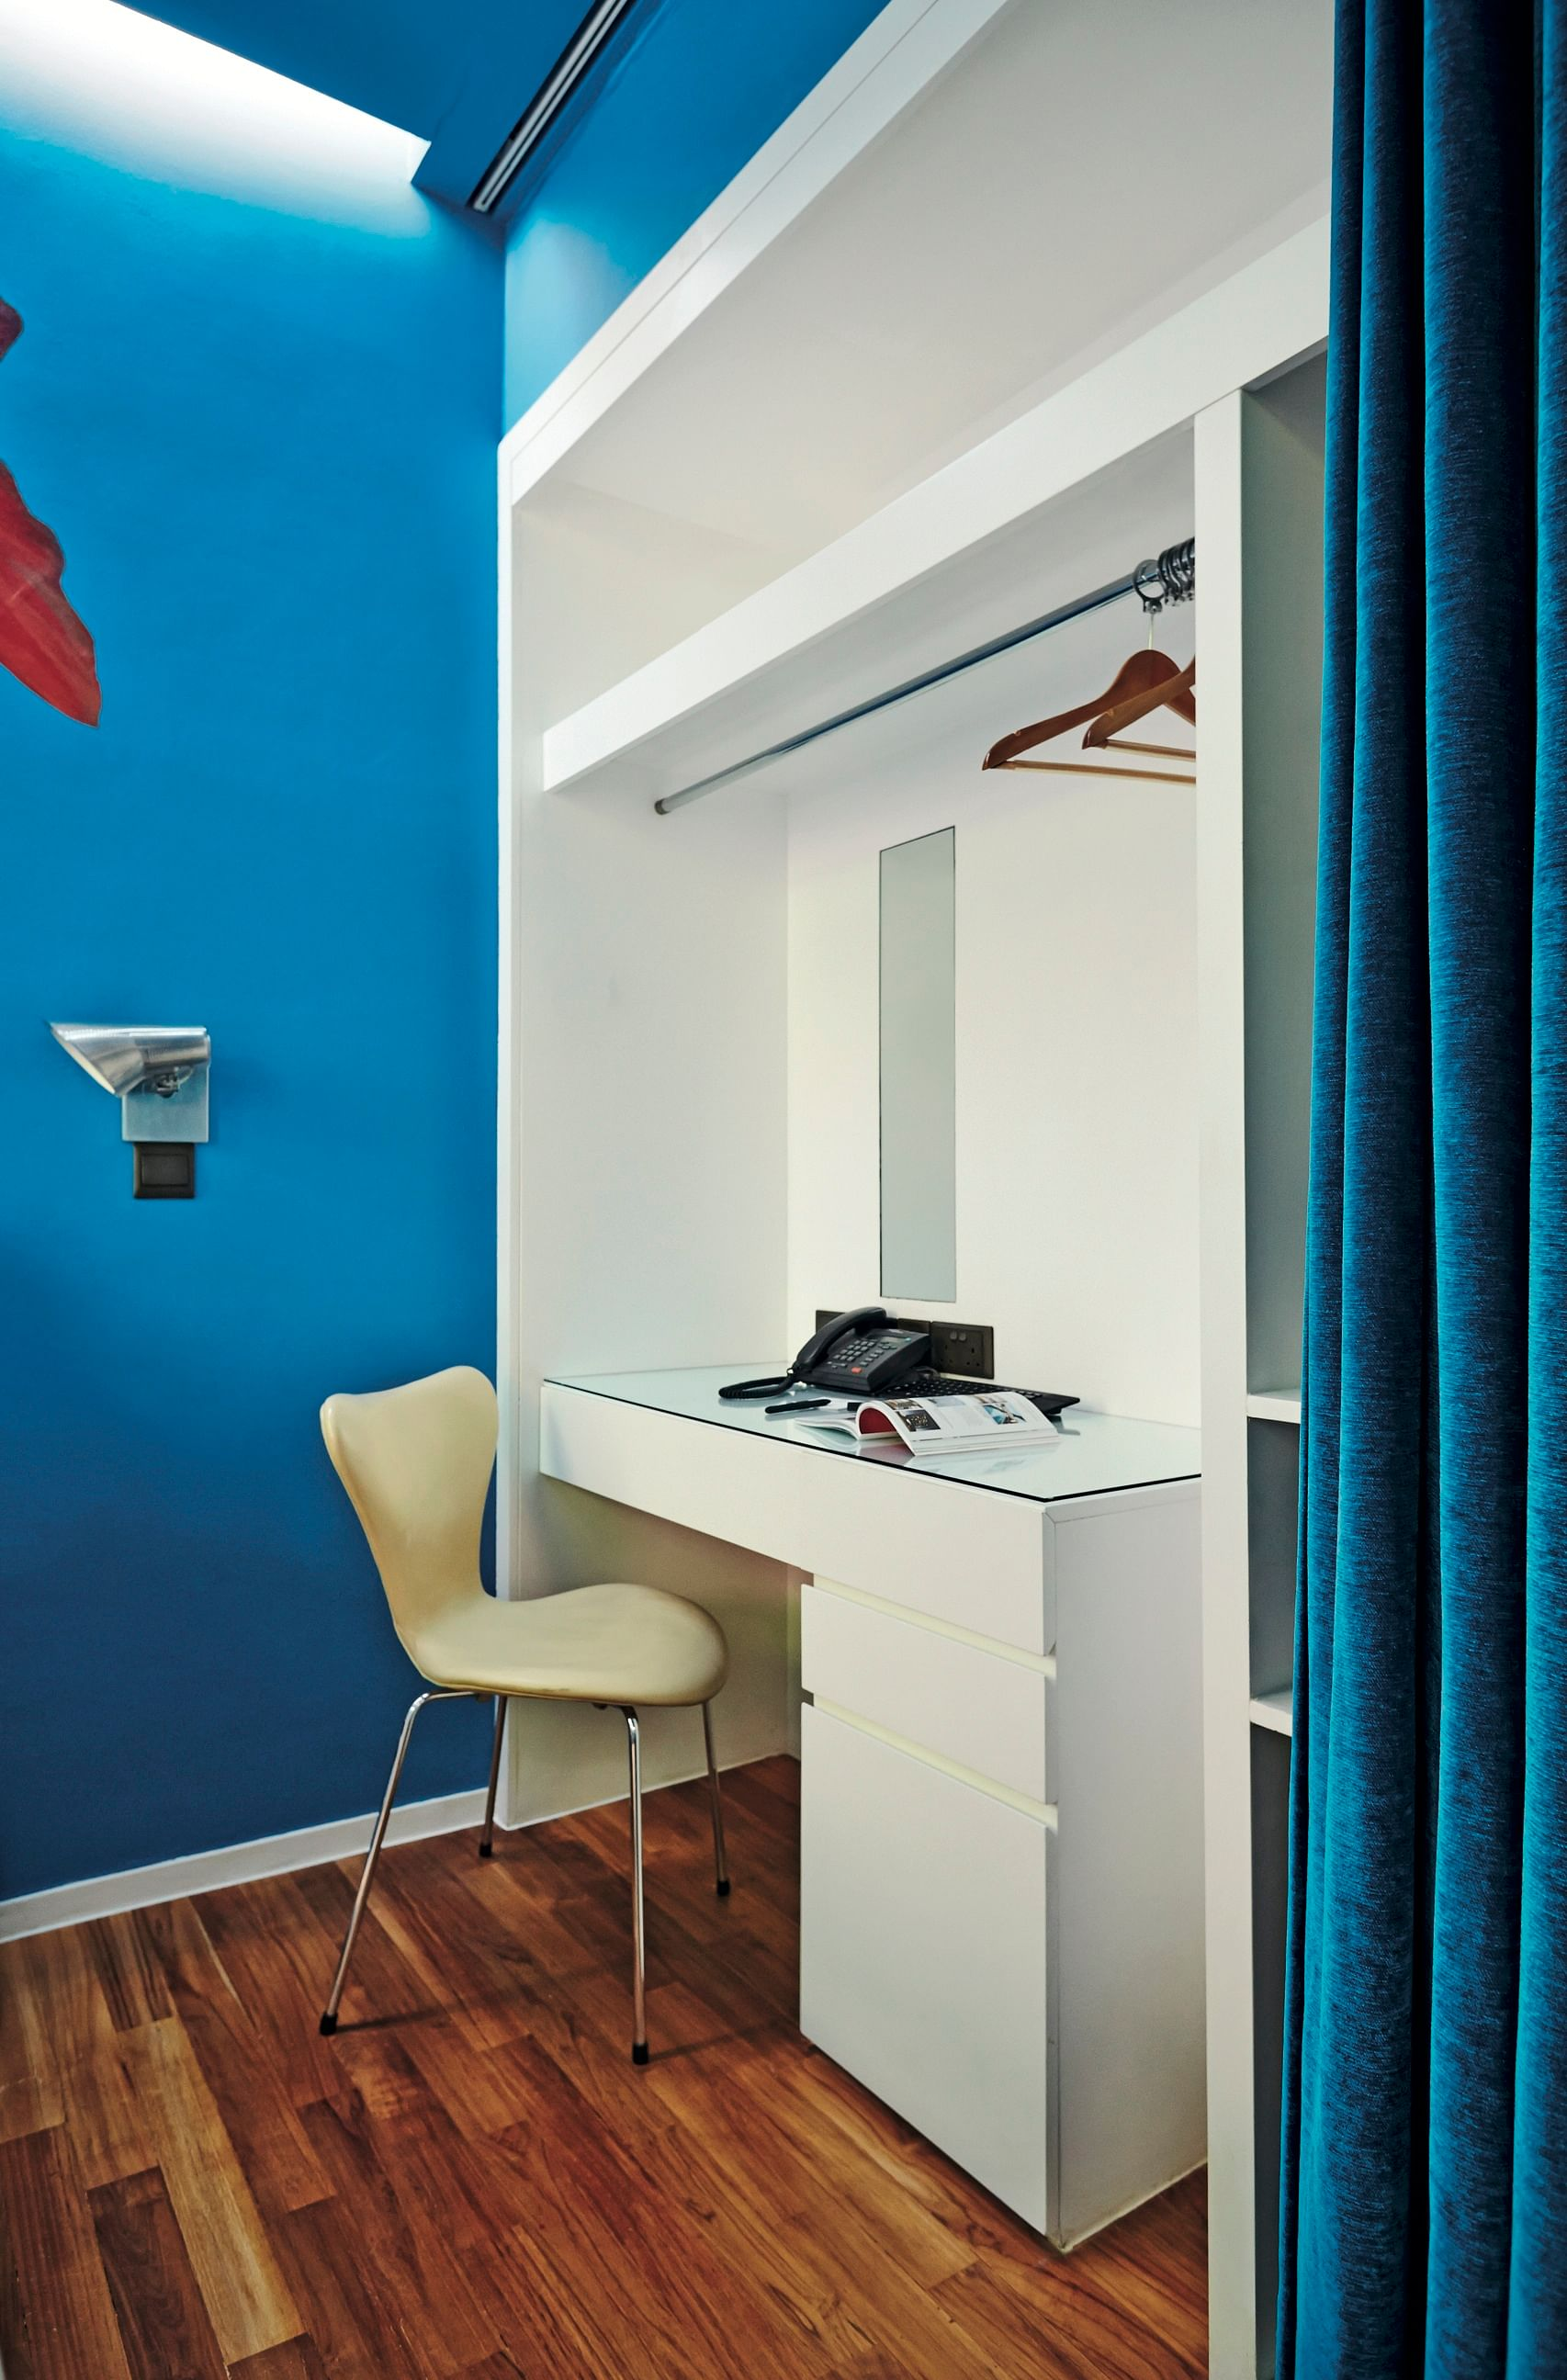 the wardrobe has a builtin tabletop and drawers that can be used as a workspace or dressing table and is easily concealed behind the curtain